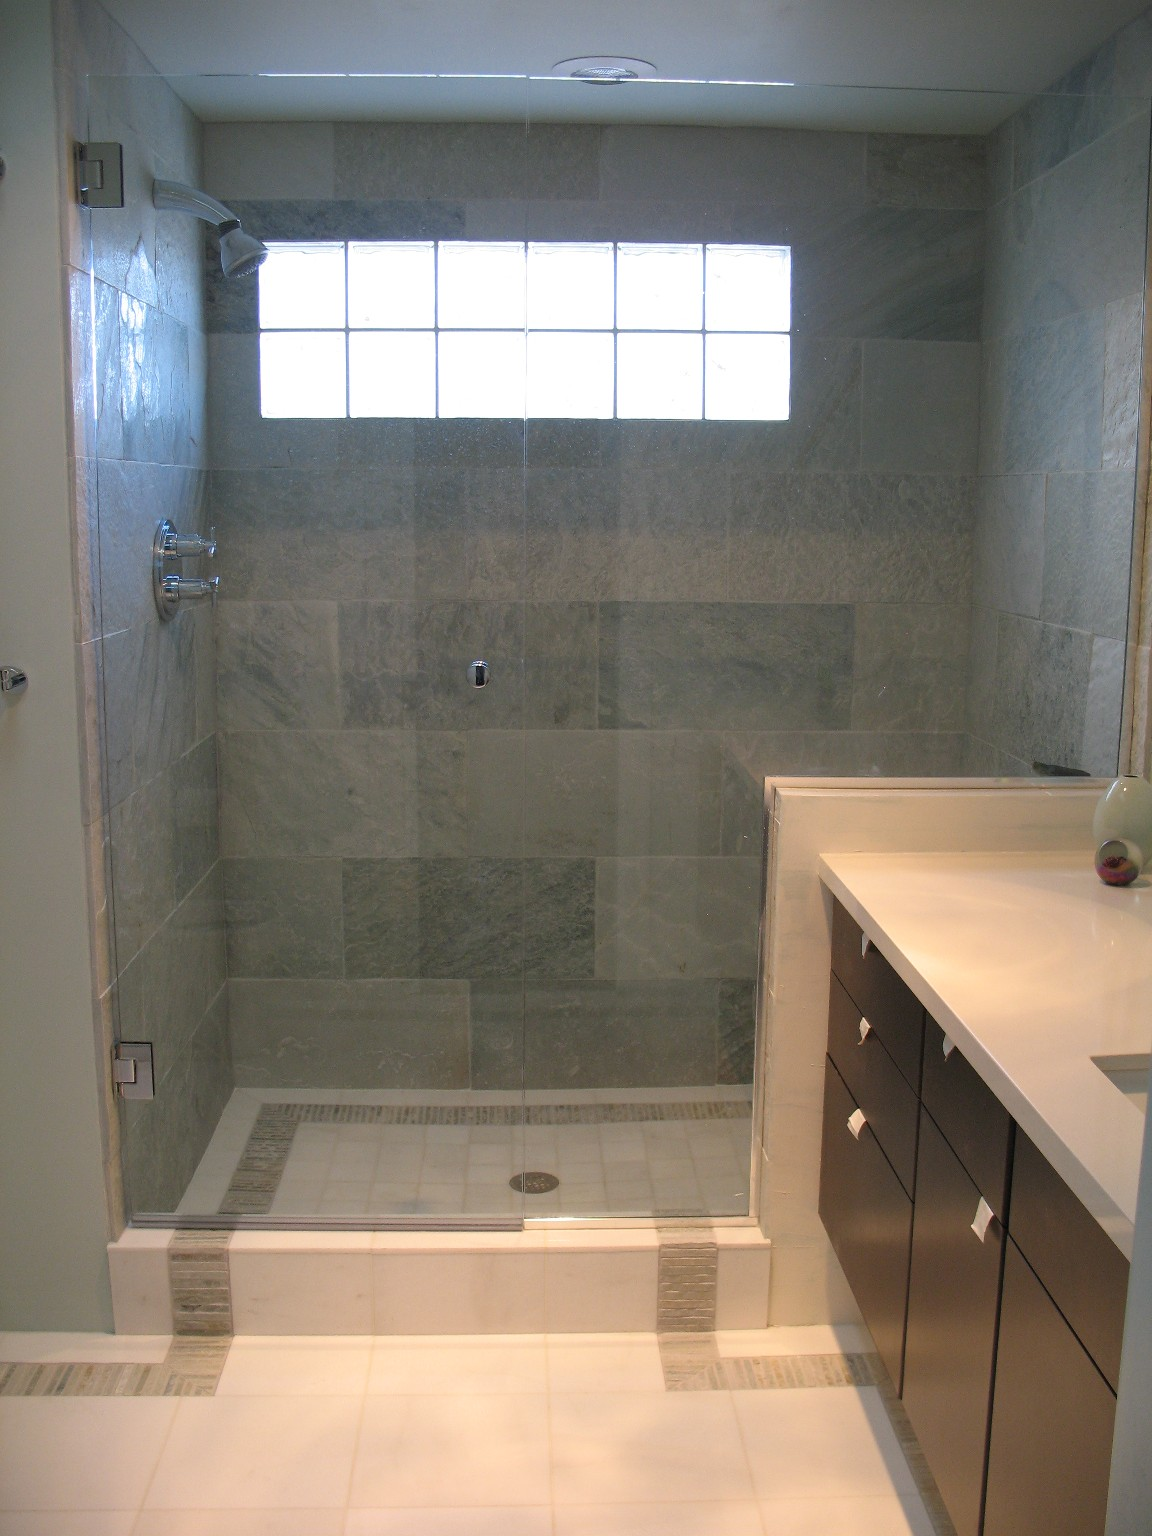 33 amazing ideas and pictures of modern bathroom shower Bathroom tile pictures gallery